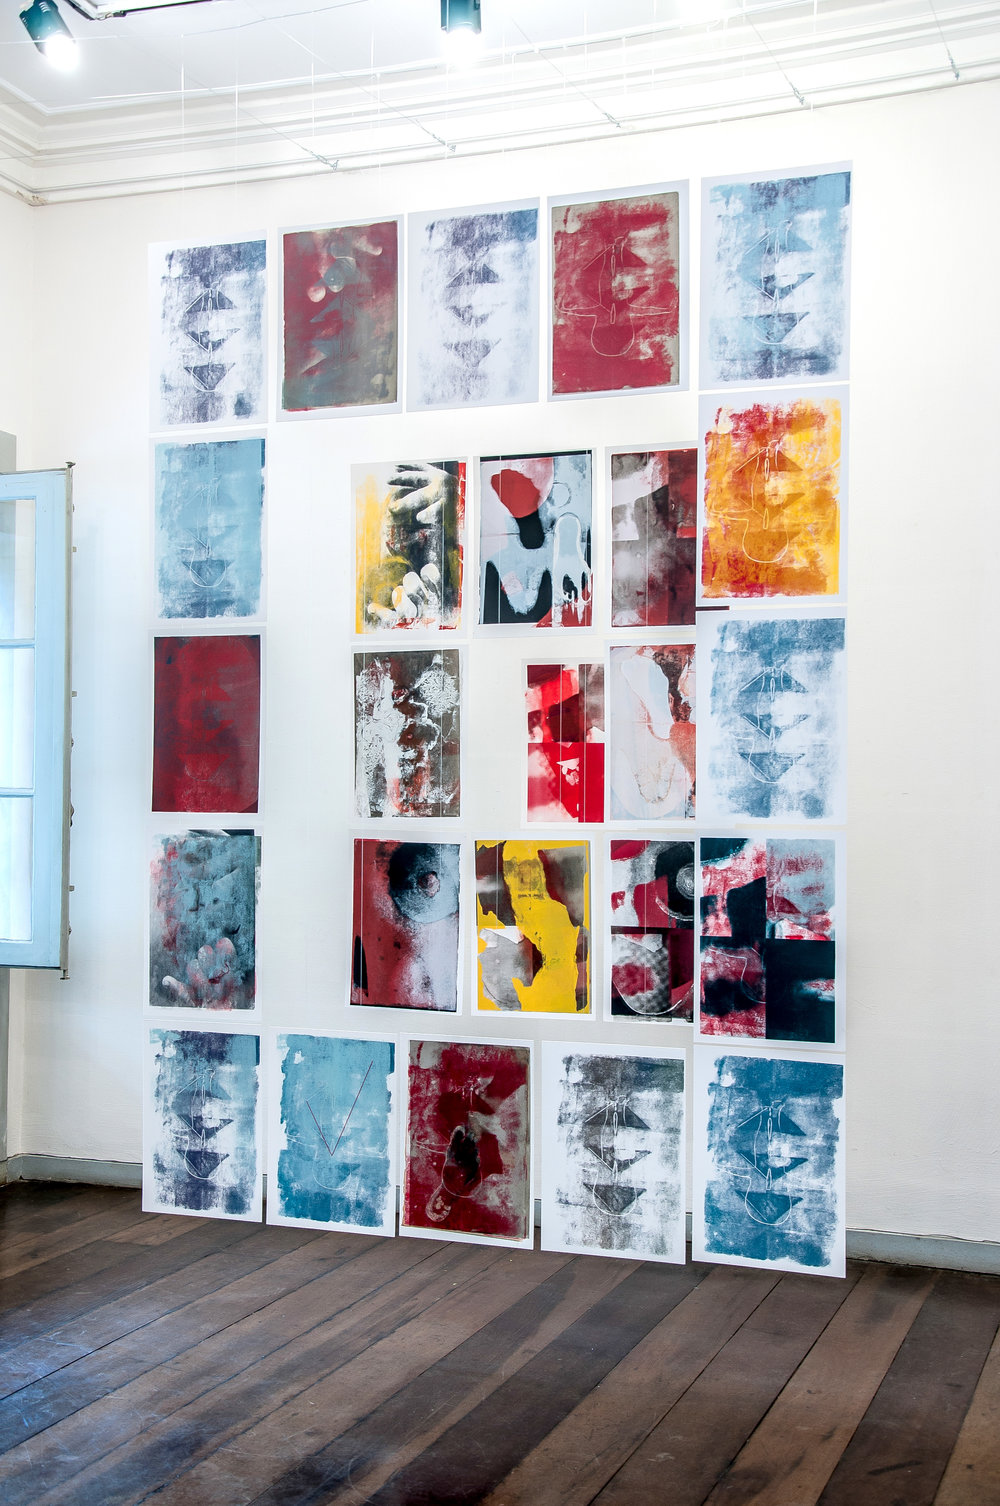 Installation  Portal to Kaph  is composed by 25 screenprints, each one embedded with a Hebrew letter invisible to the eyes. We placed it in the entry room, welcoming viewers into the exhibition.